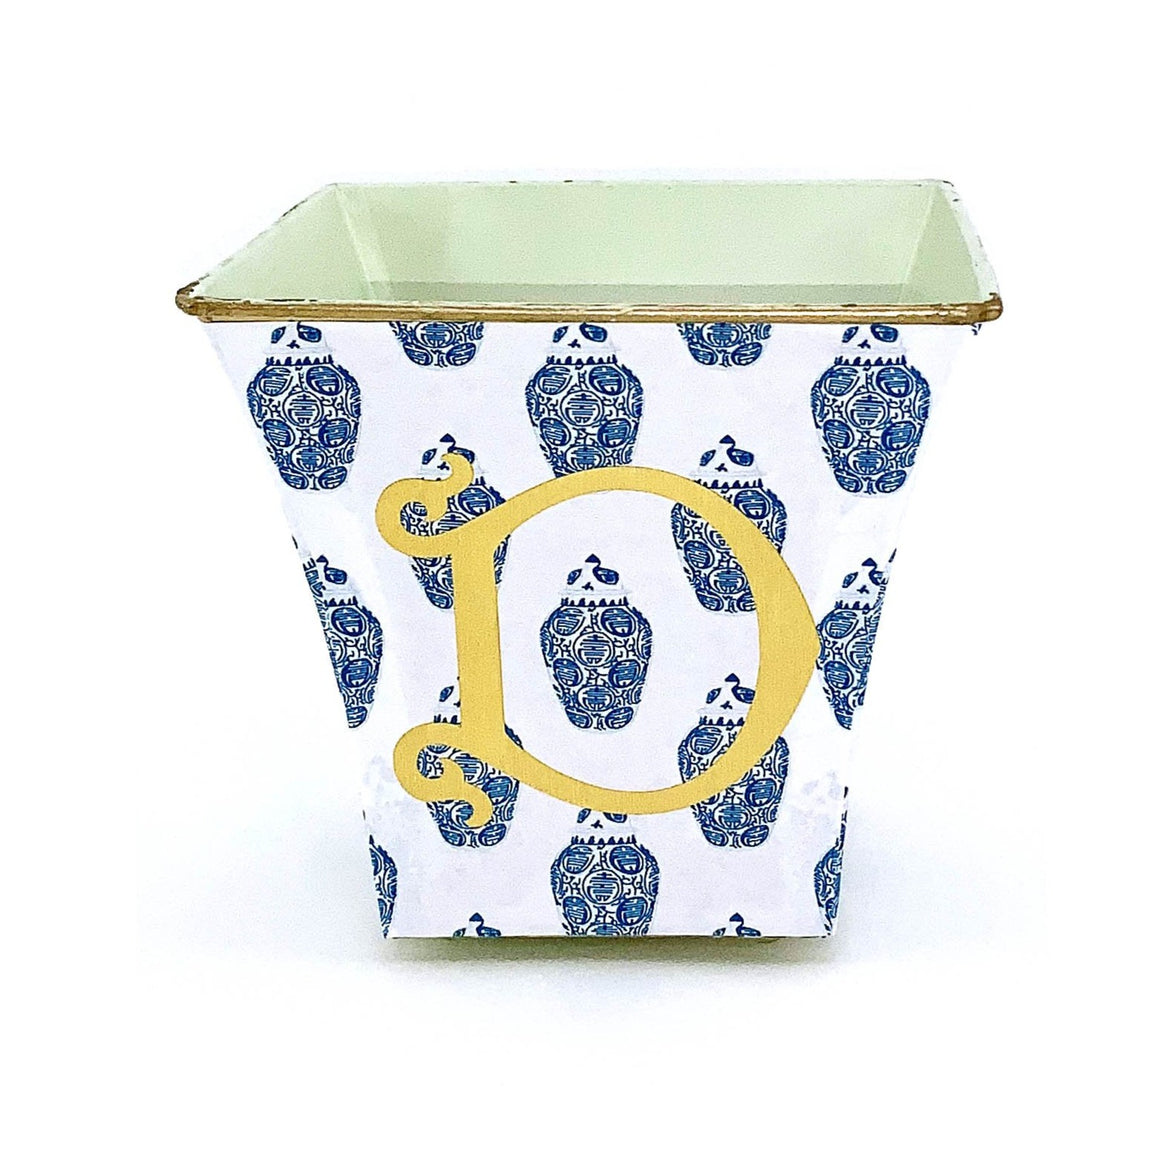 Ginger Jar Blue Cachepot Candle with Monogram - The Preppy Bunny